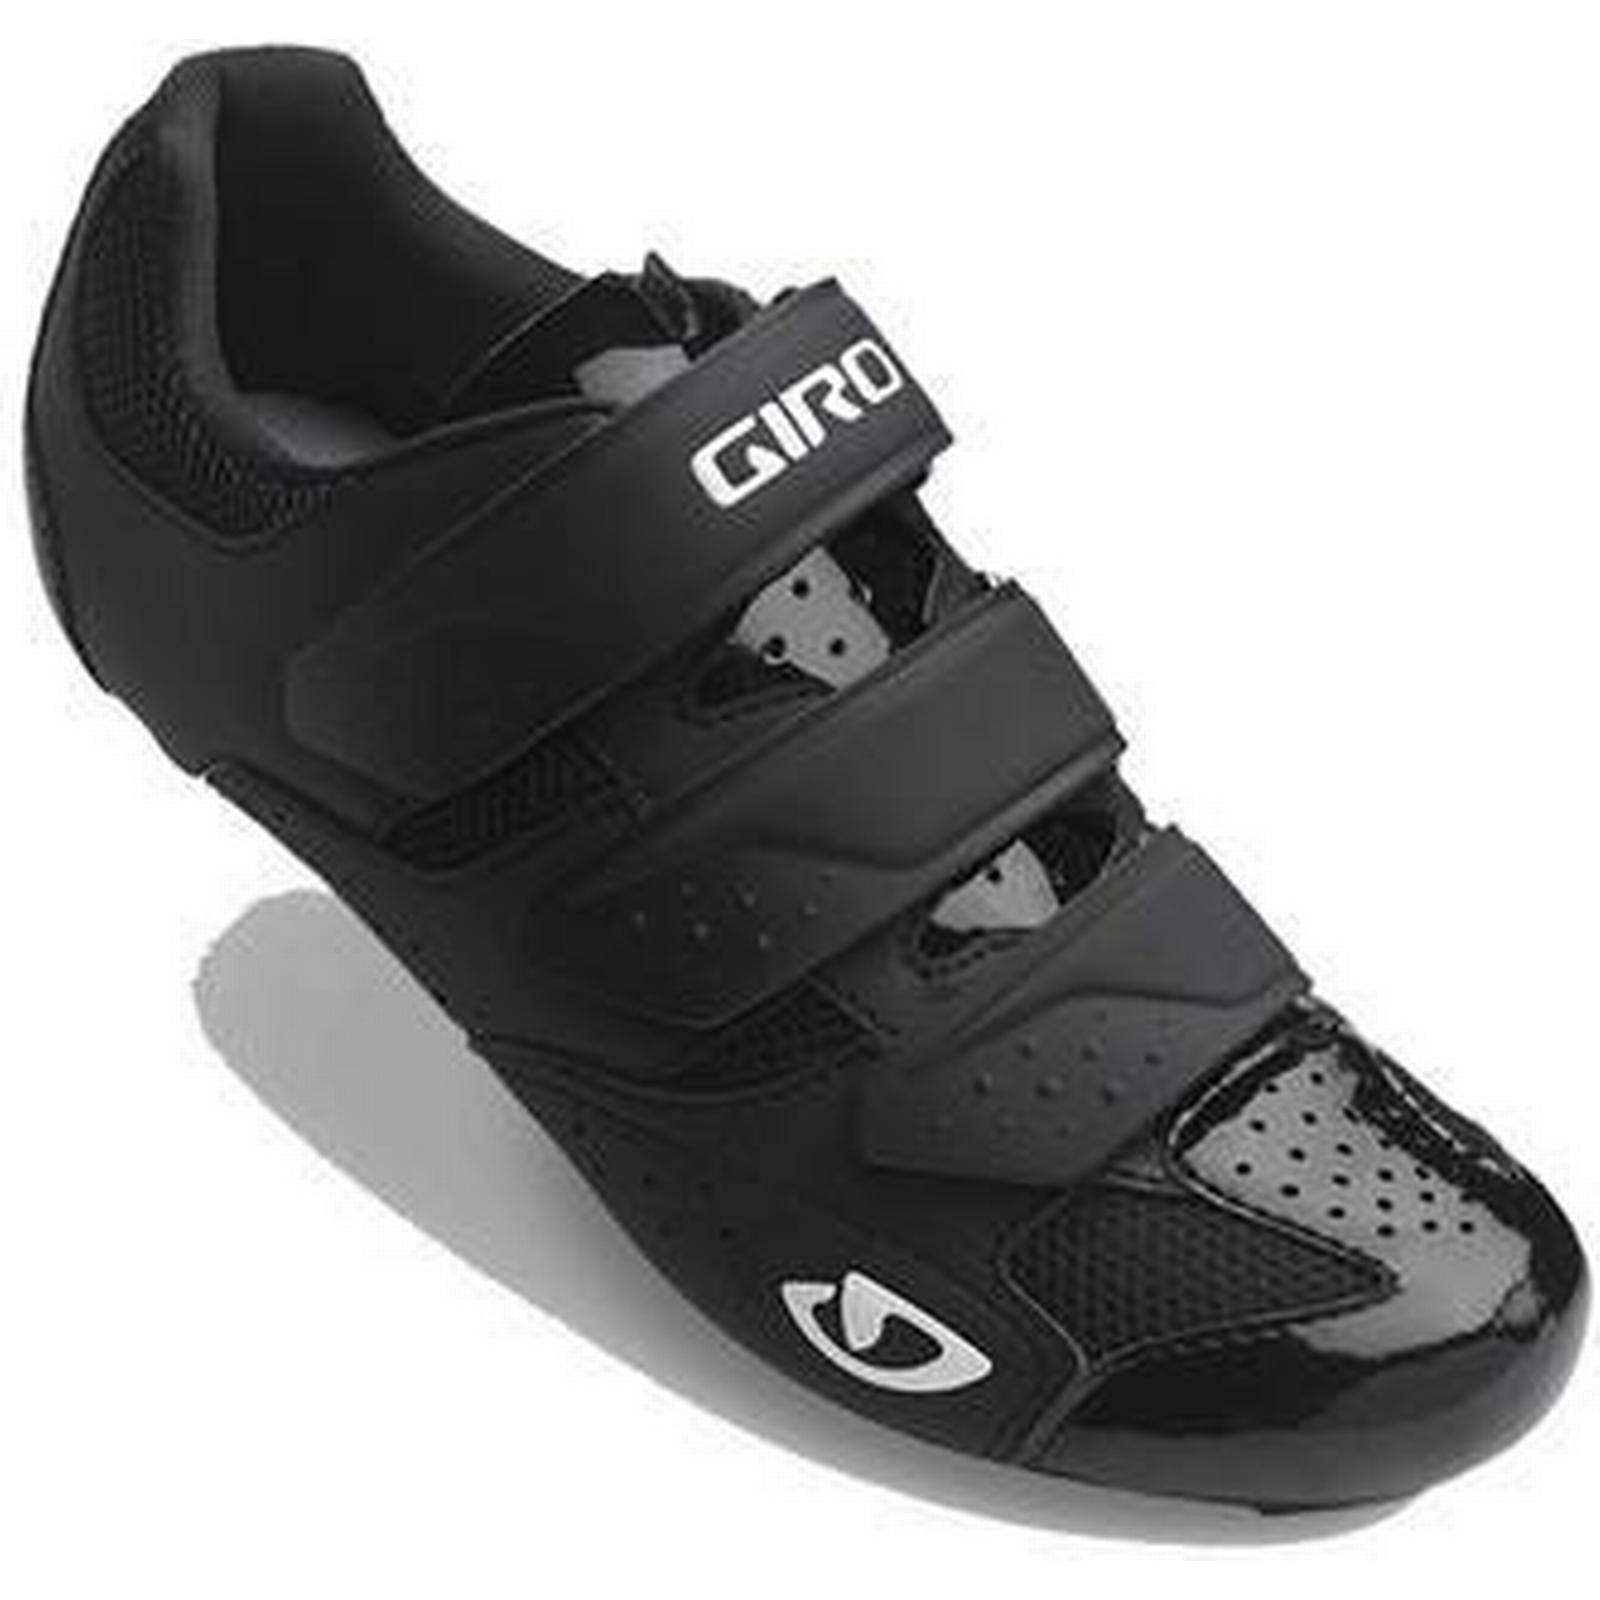 Giro Techne Women's Black Road Cycling Shoes | Black Women's - 36 e4ff83